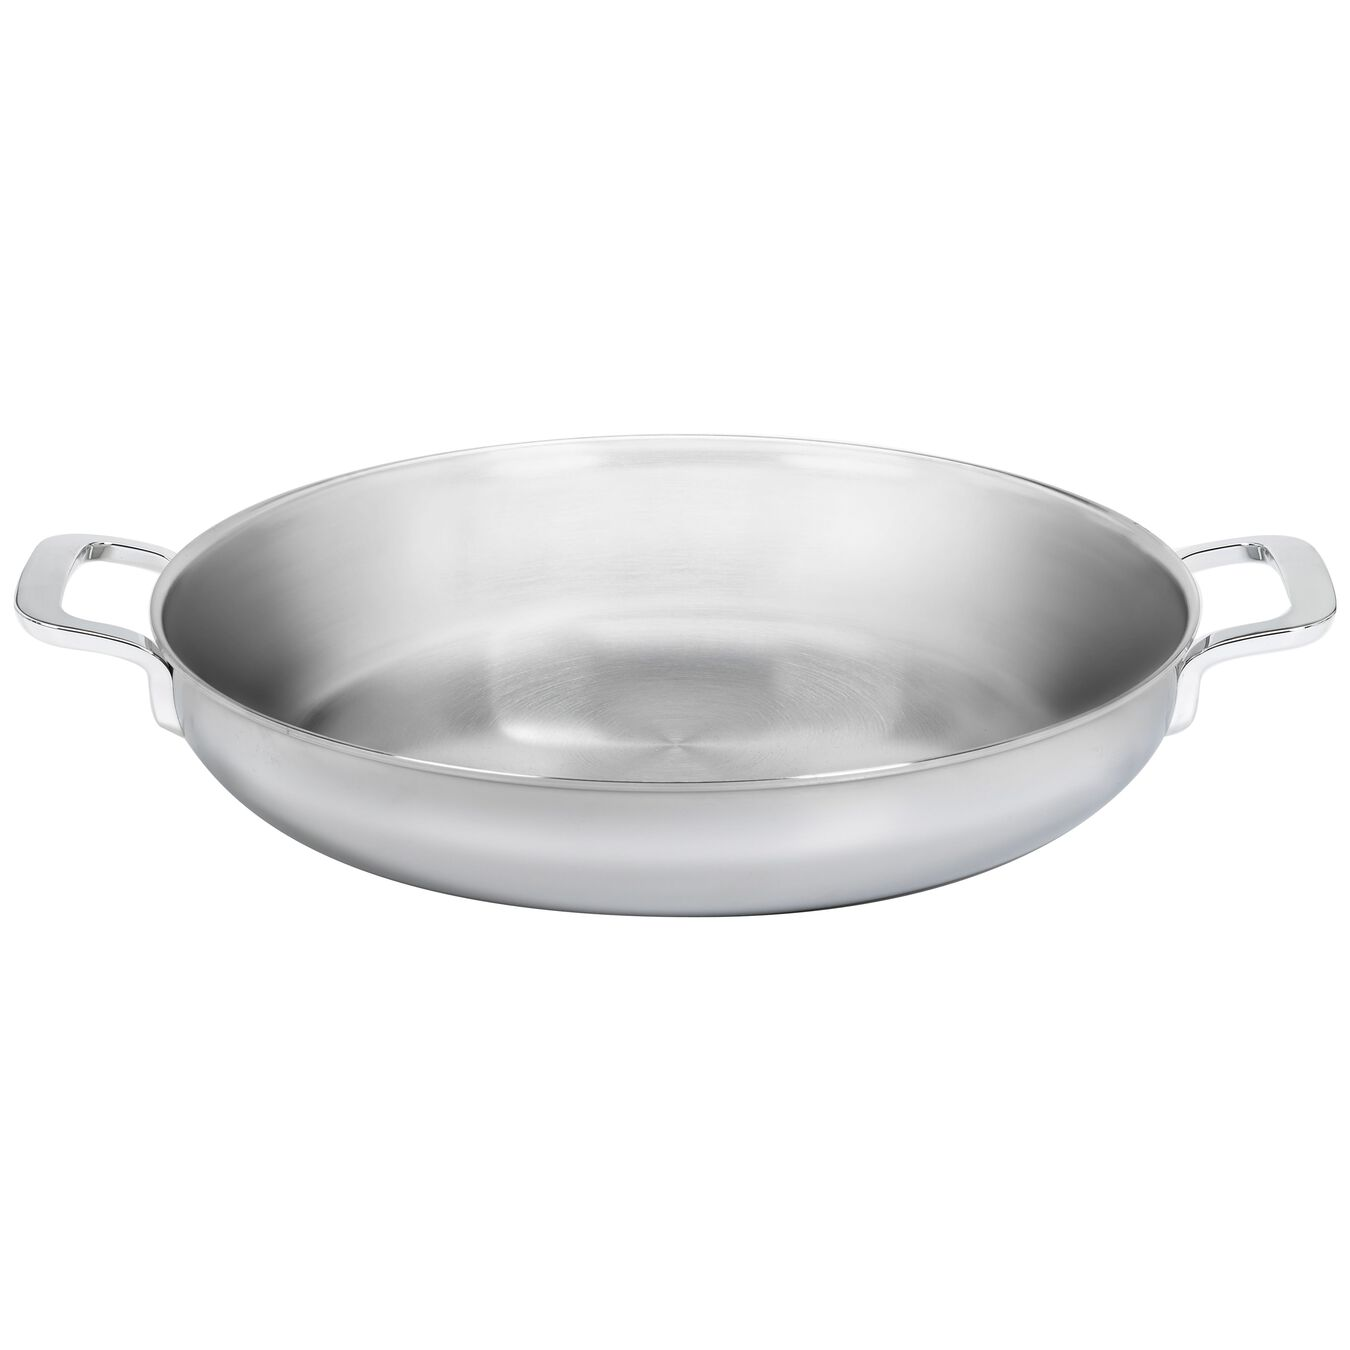 18/10 Stainless Steel Sauteuse, Silver,,large 2